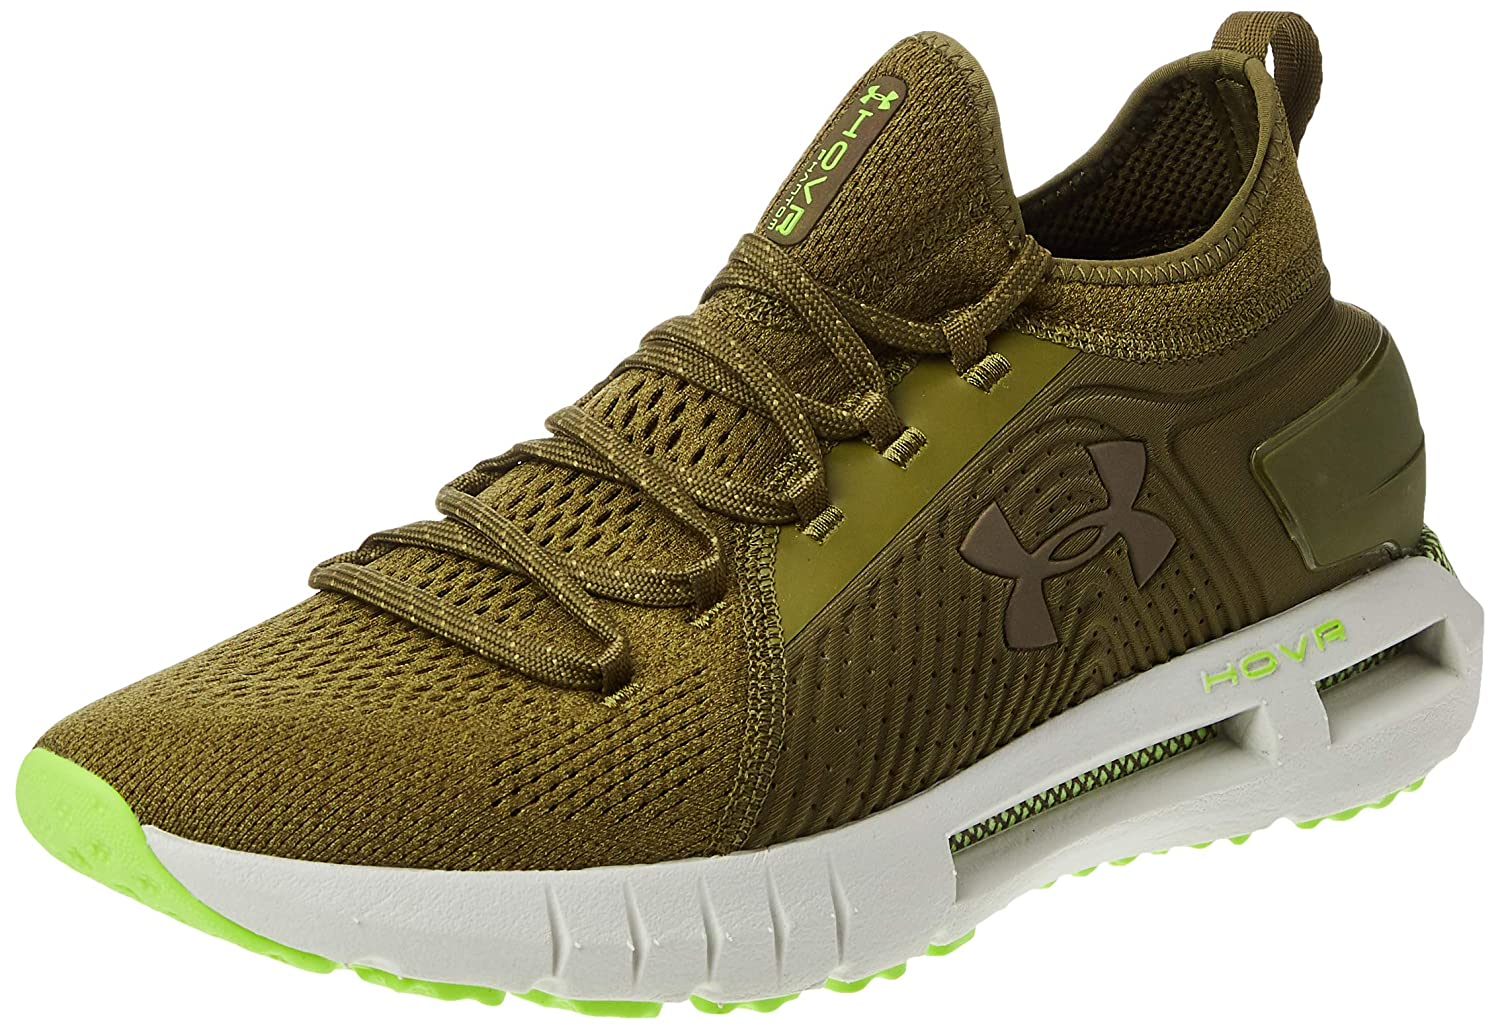 Chaussures de Running Comp/étition Homme Under Armour HOVR Infinite 3021395-401